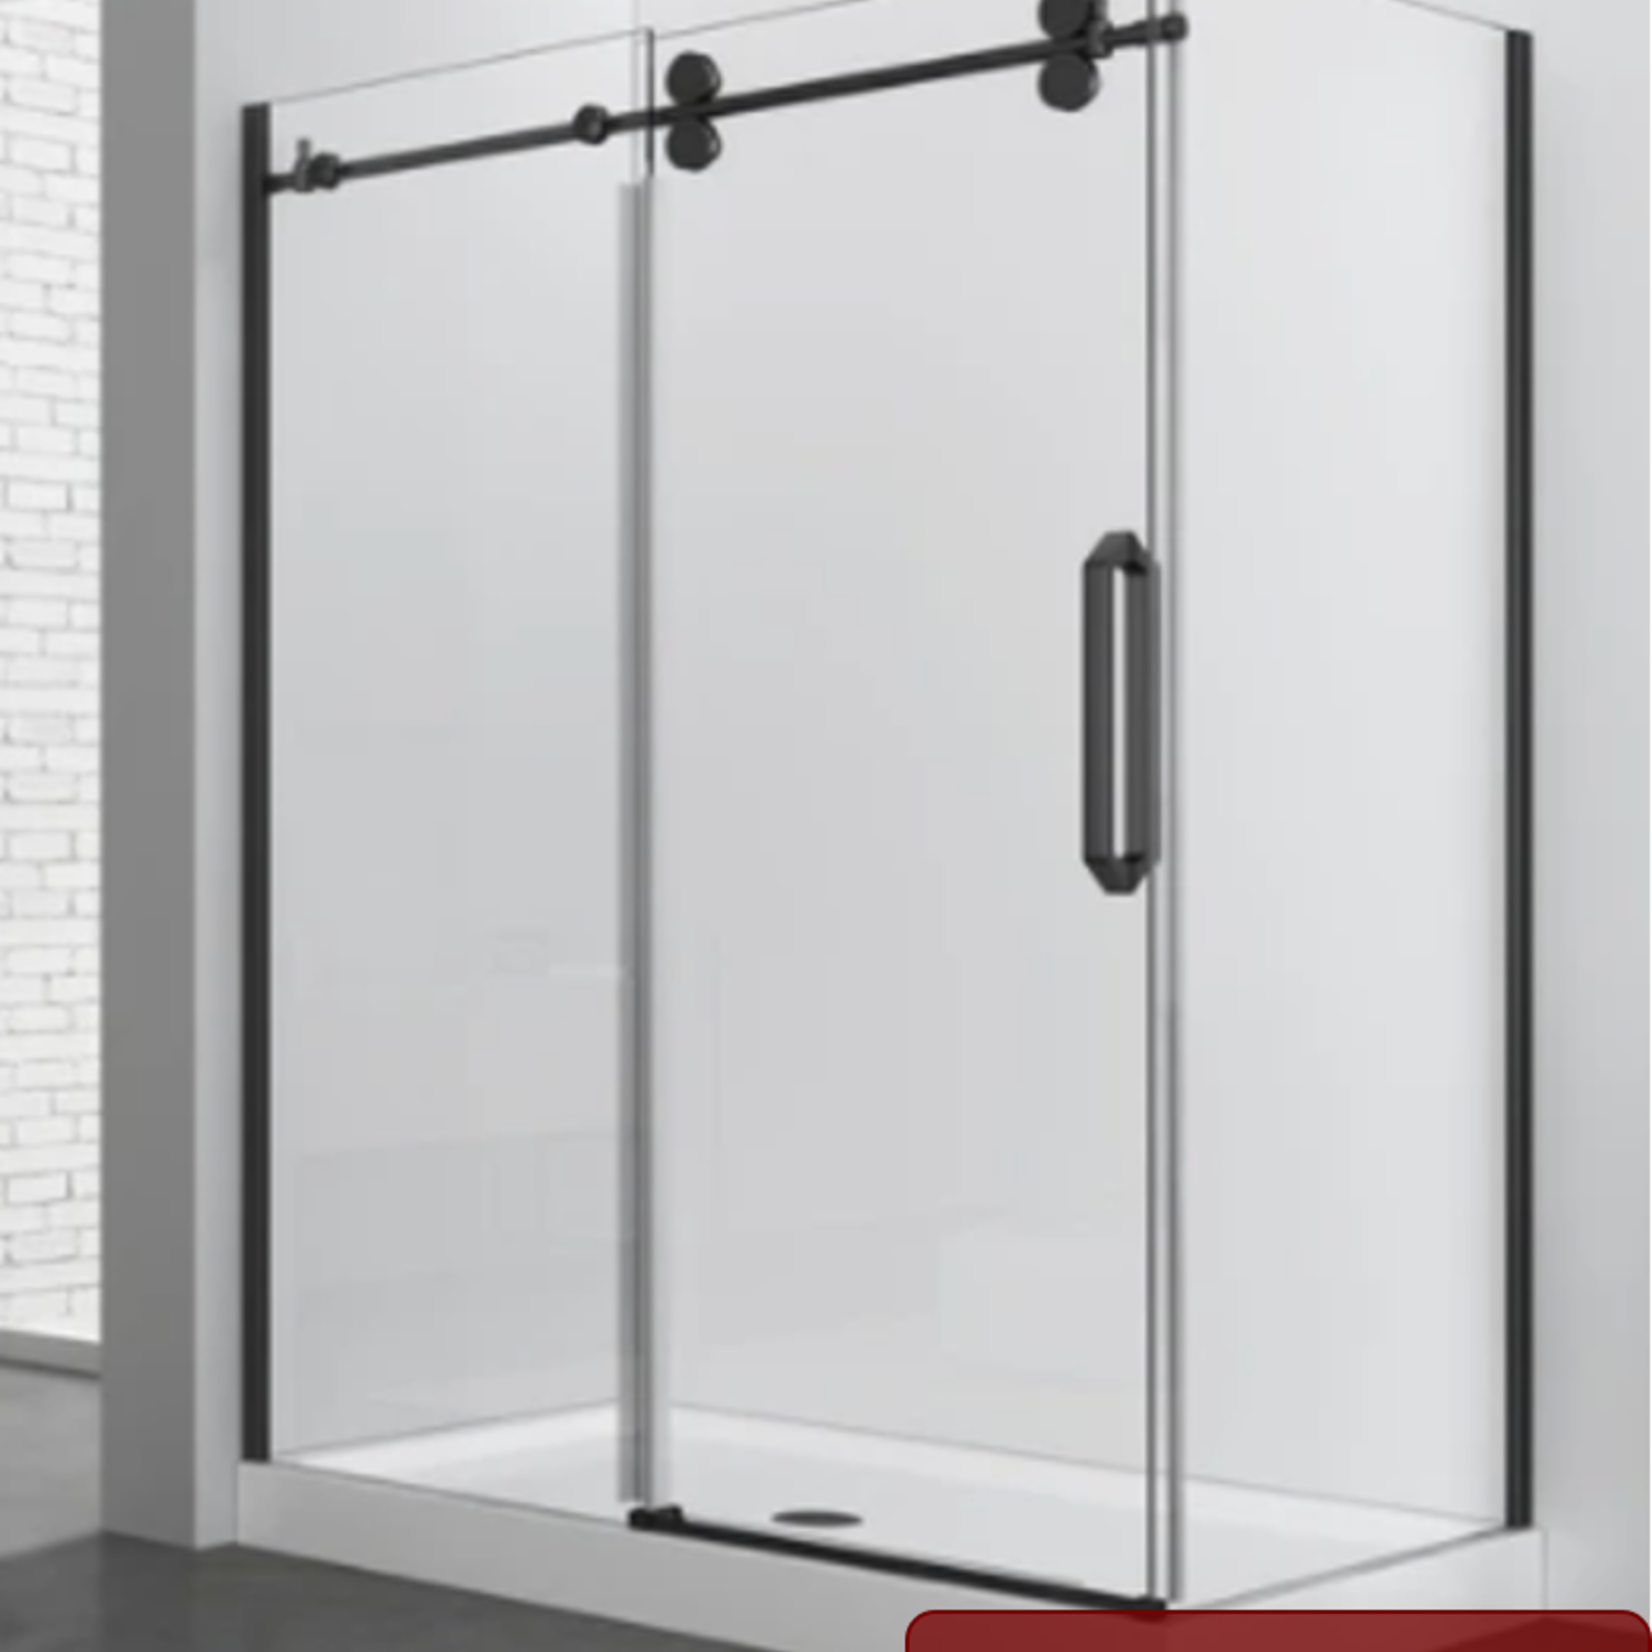 Reversible shower set 32x48 matt black Zirkon Apo series